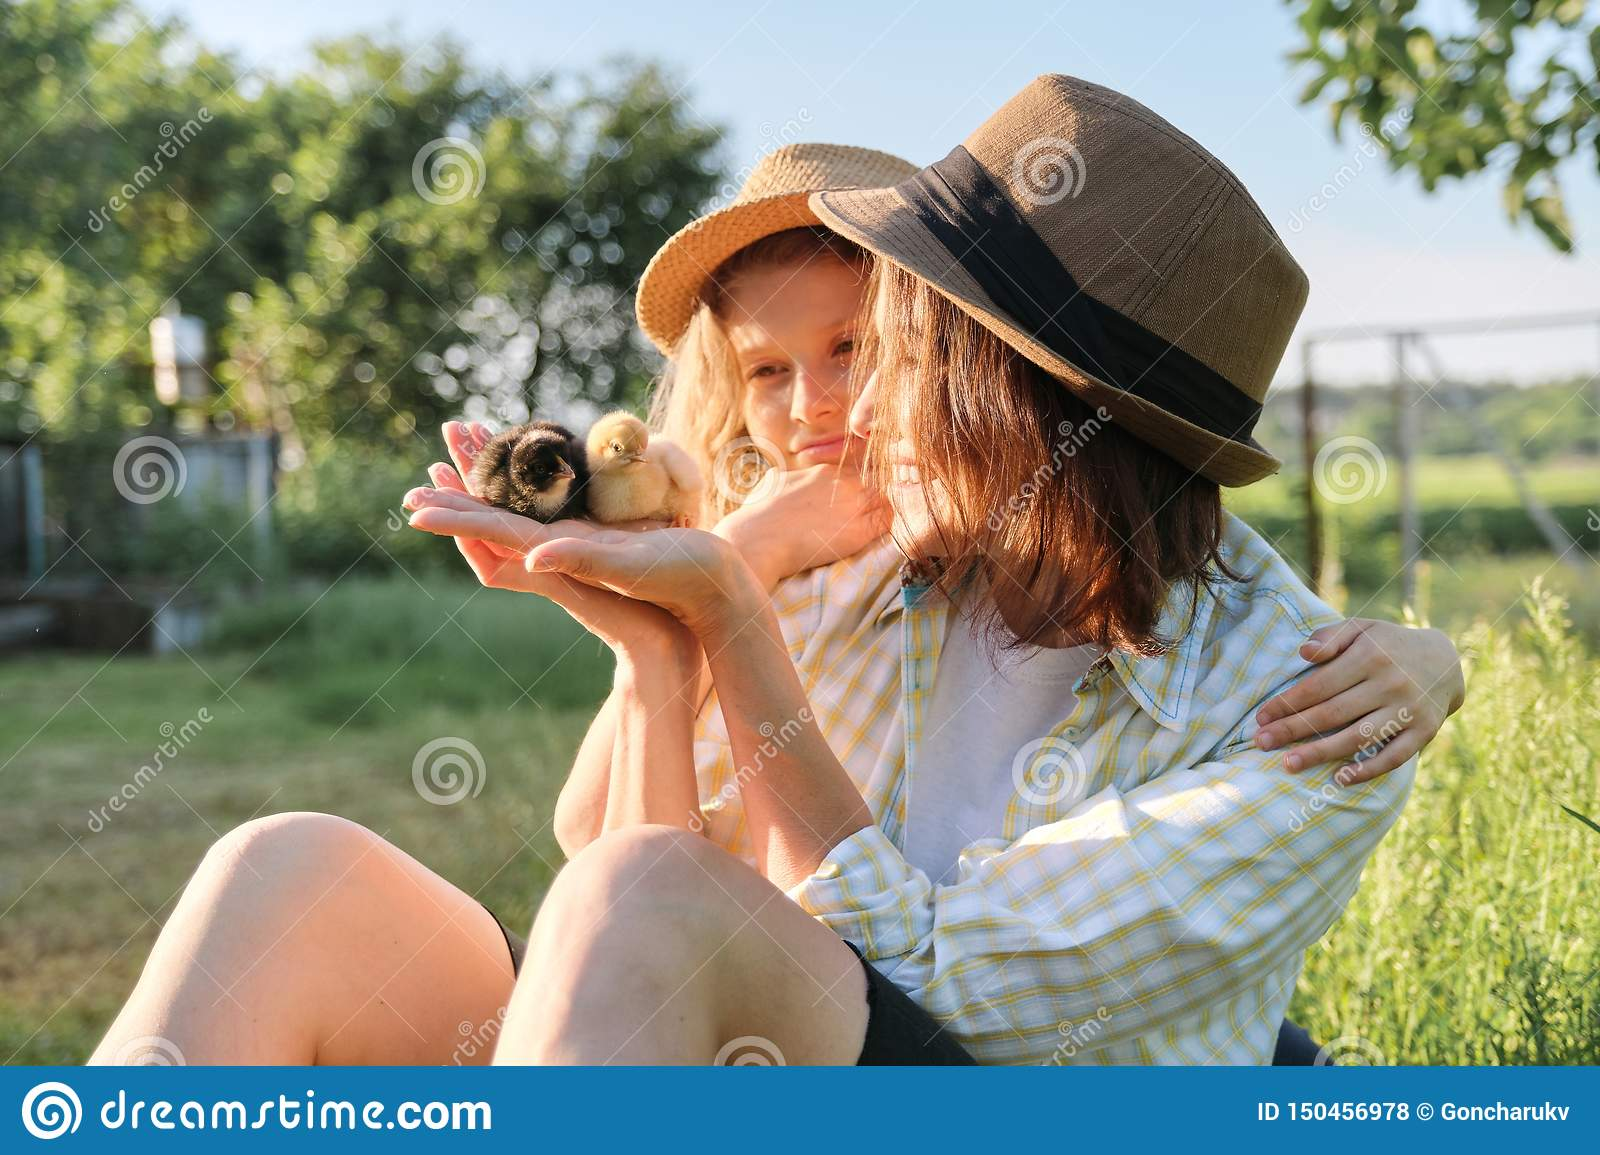 Happy family mother with daughter in nature, woman holding small newborn baby chicks in hands, farm, country rustic style